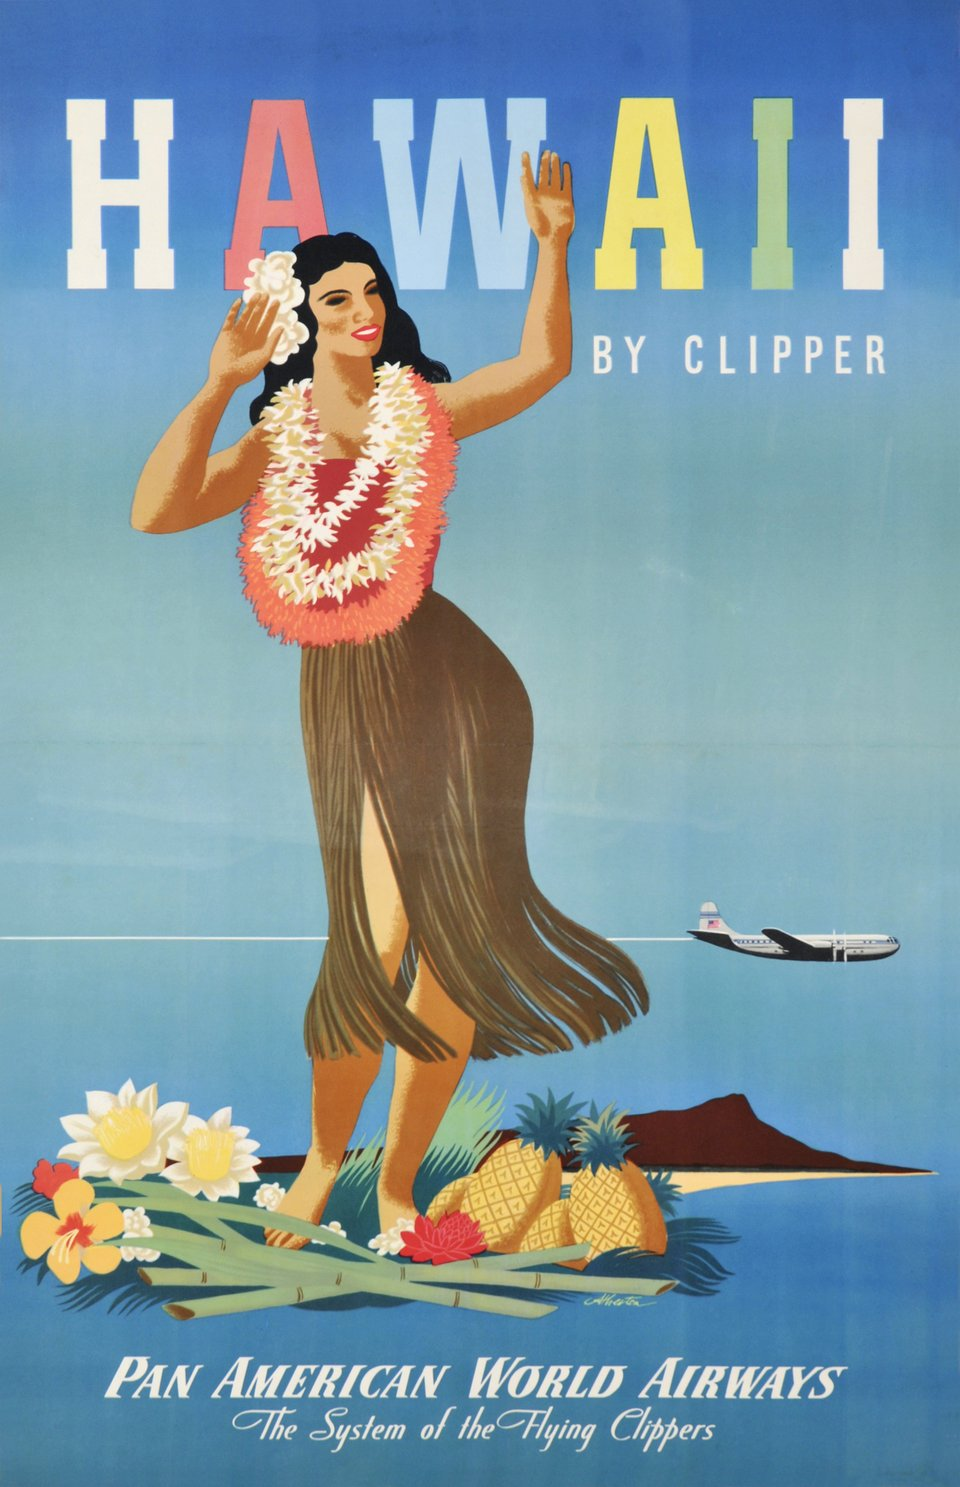 PAN AM - Hawaii by Clipper, Pan American World Airlines – Affiche ancienne – ATHERTON – 1946